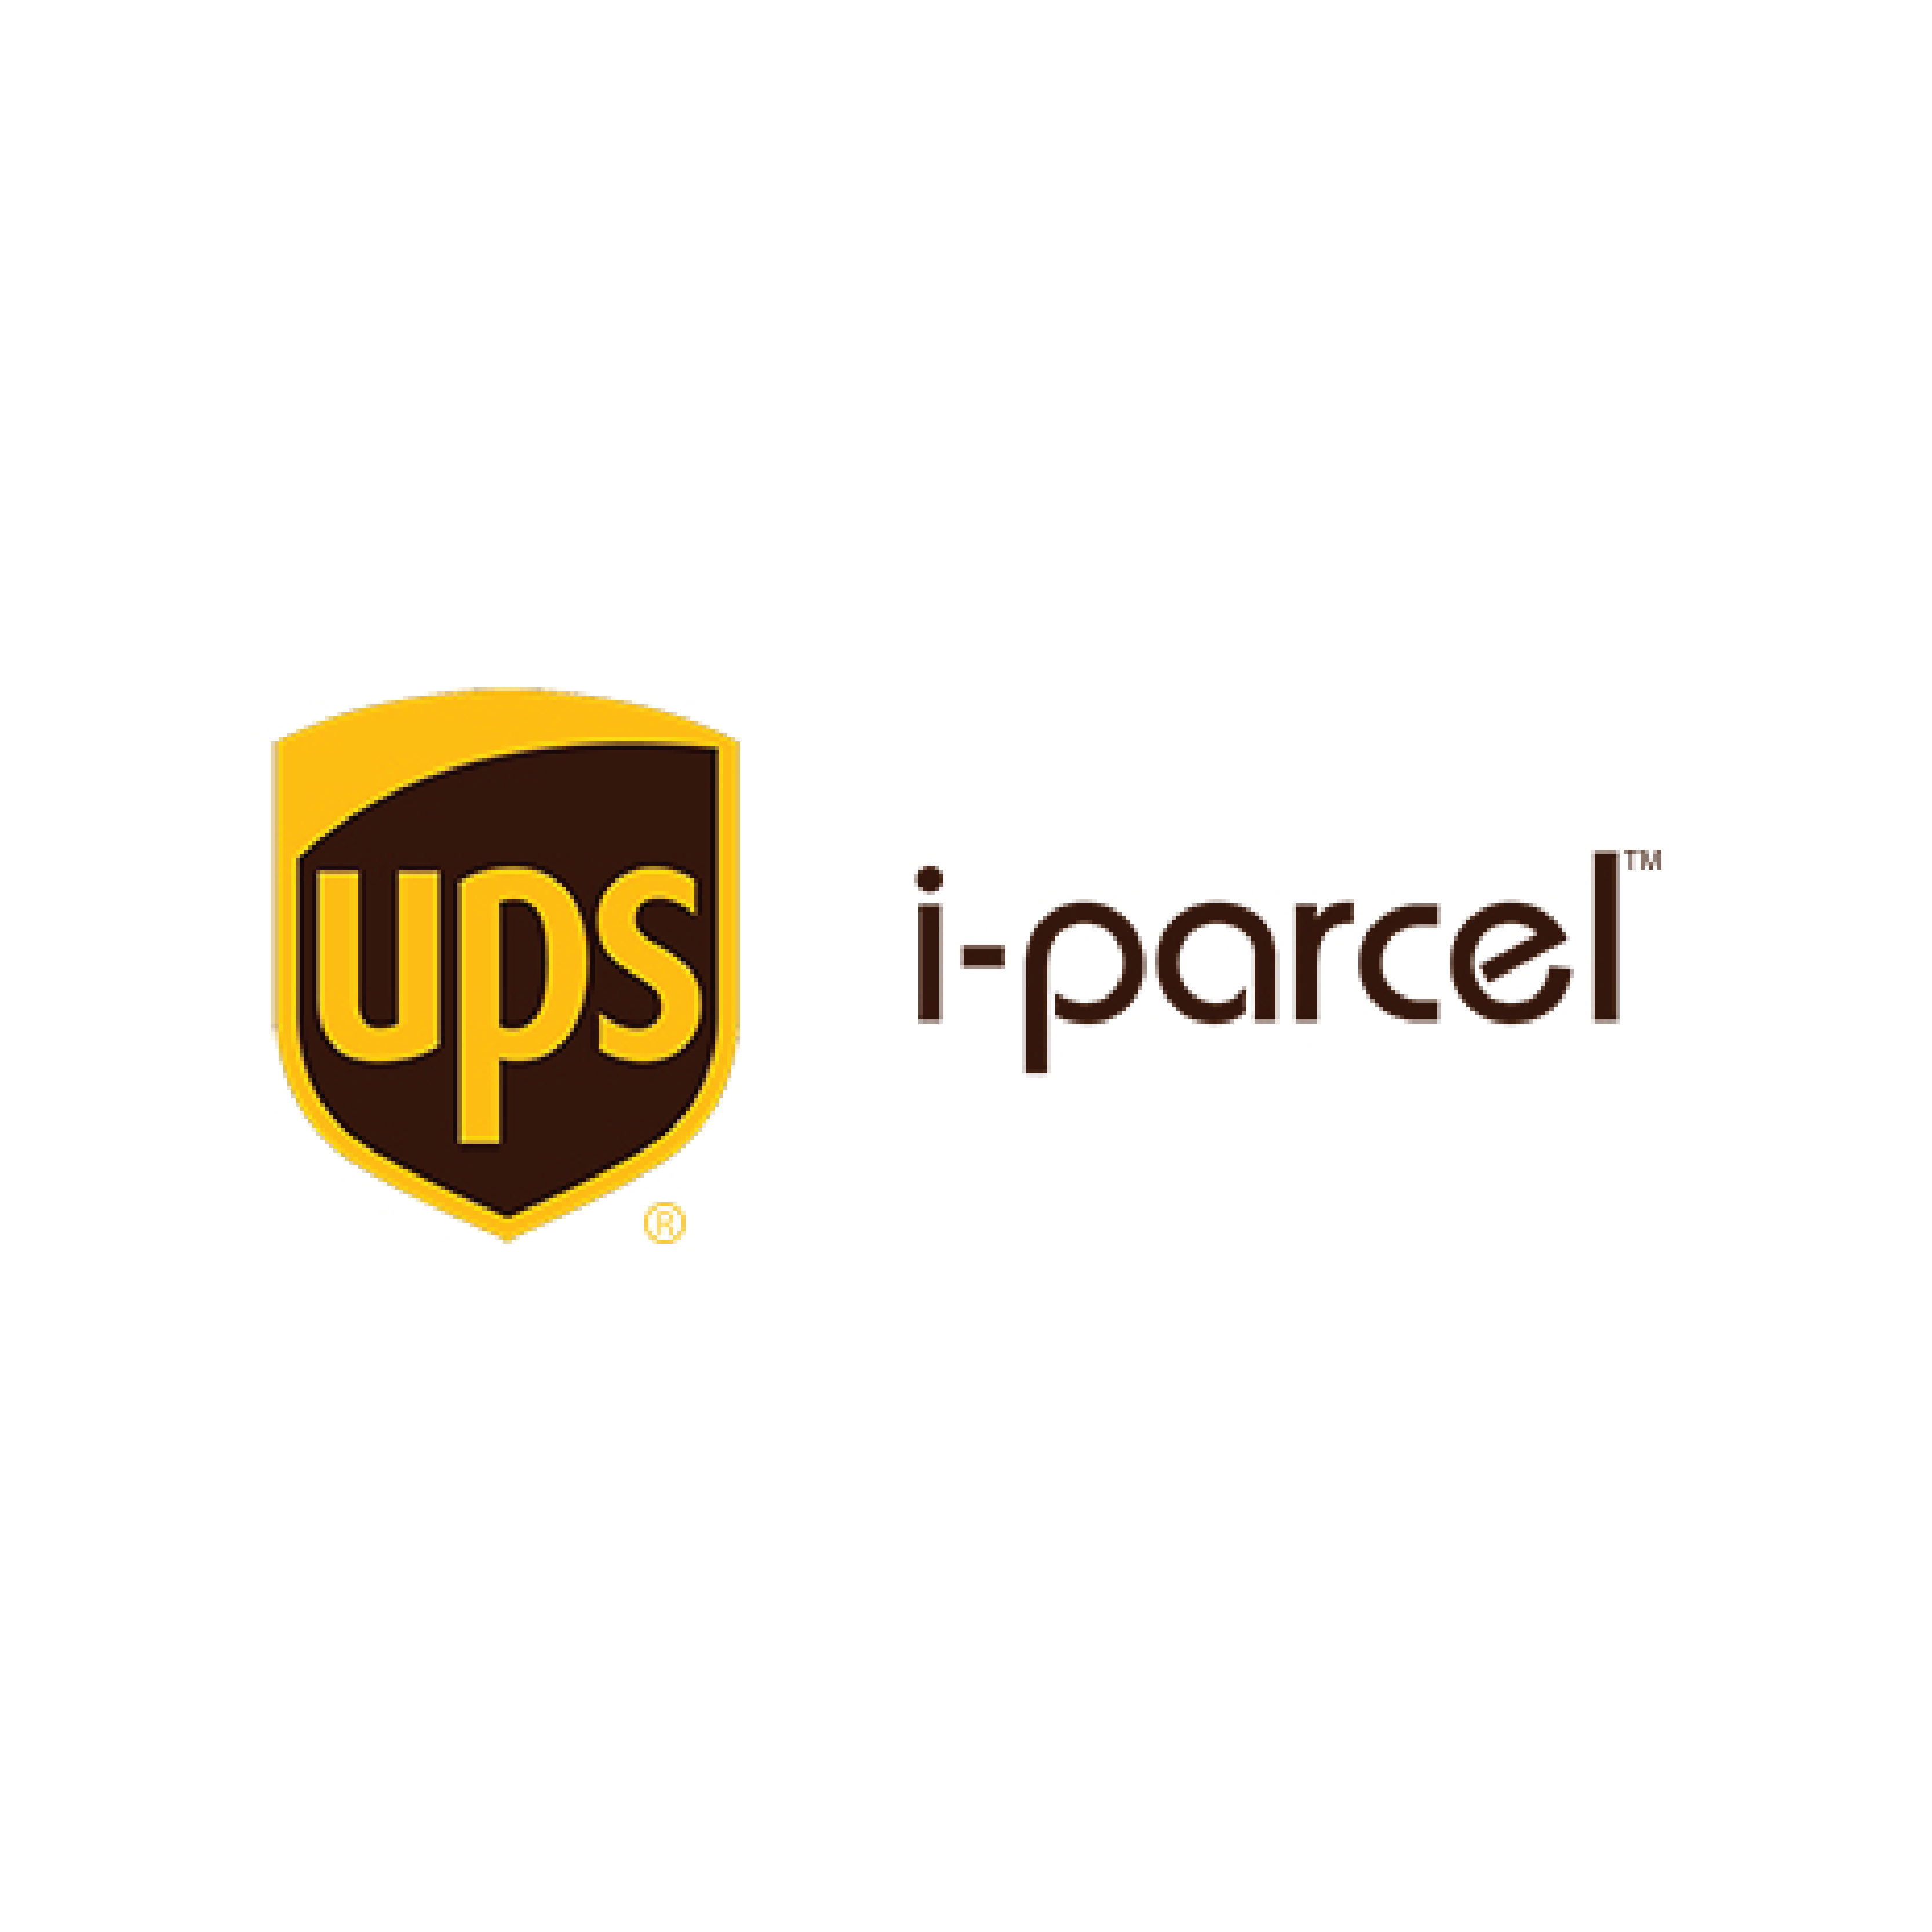 UPS i-parcel Shipedge Integration